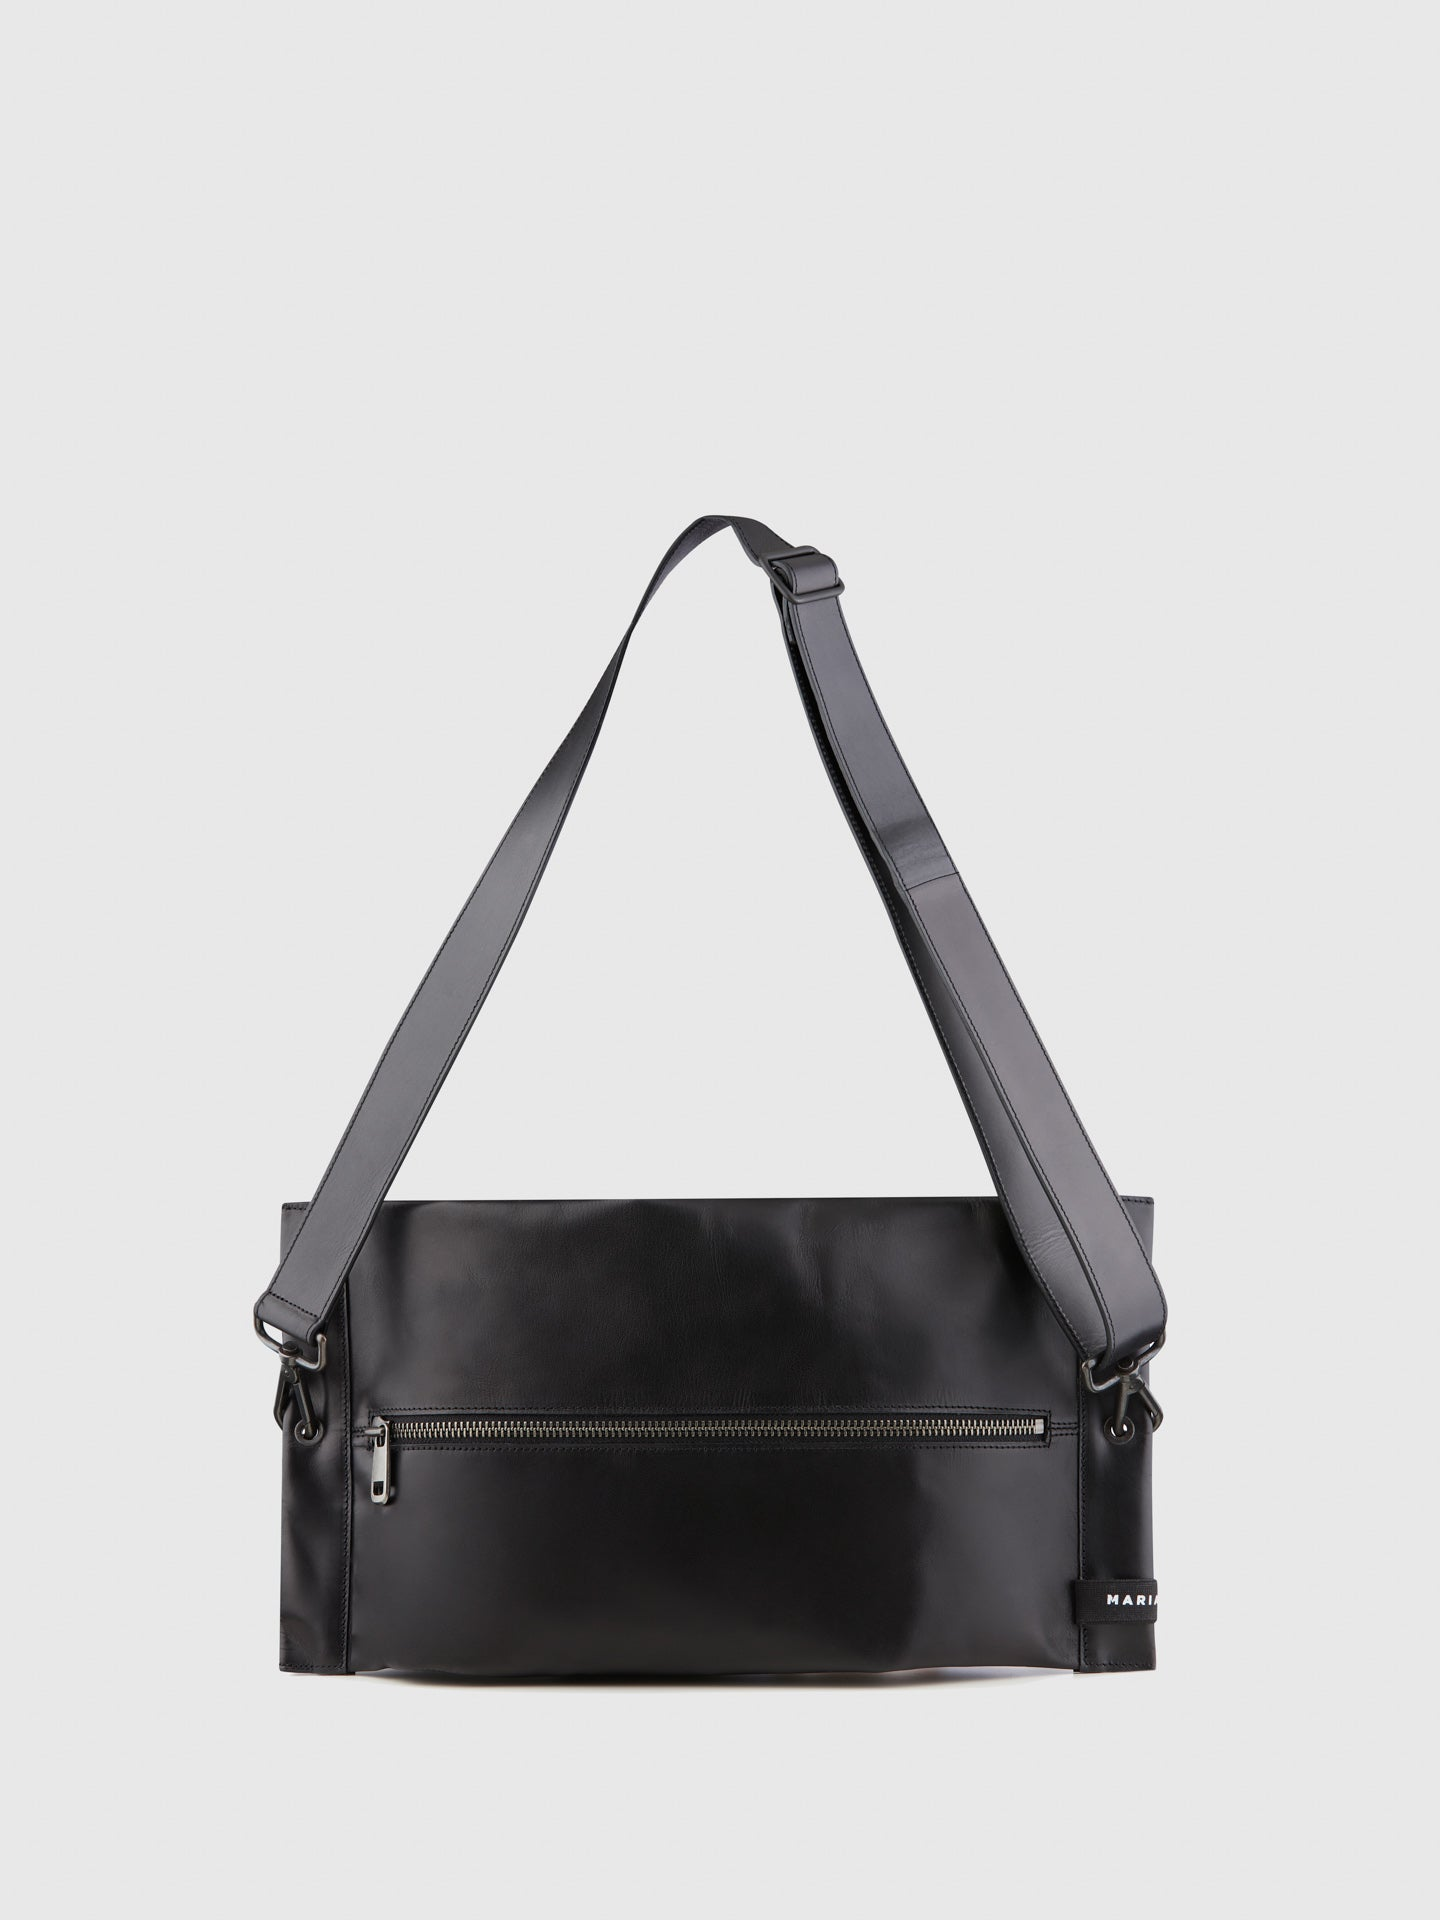 Maria Maleta Black Leather Reversible Crossbody Bag